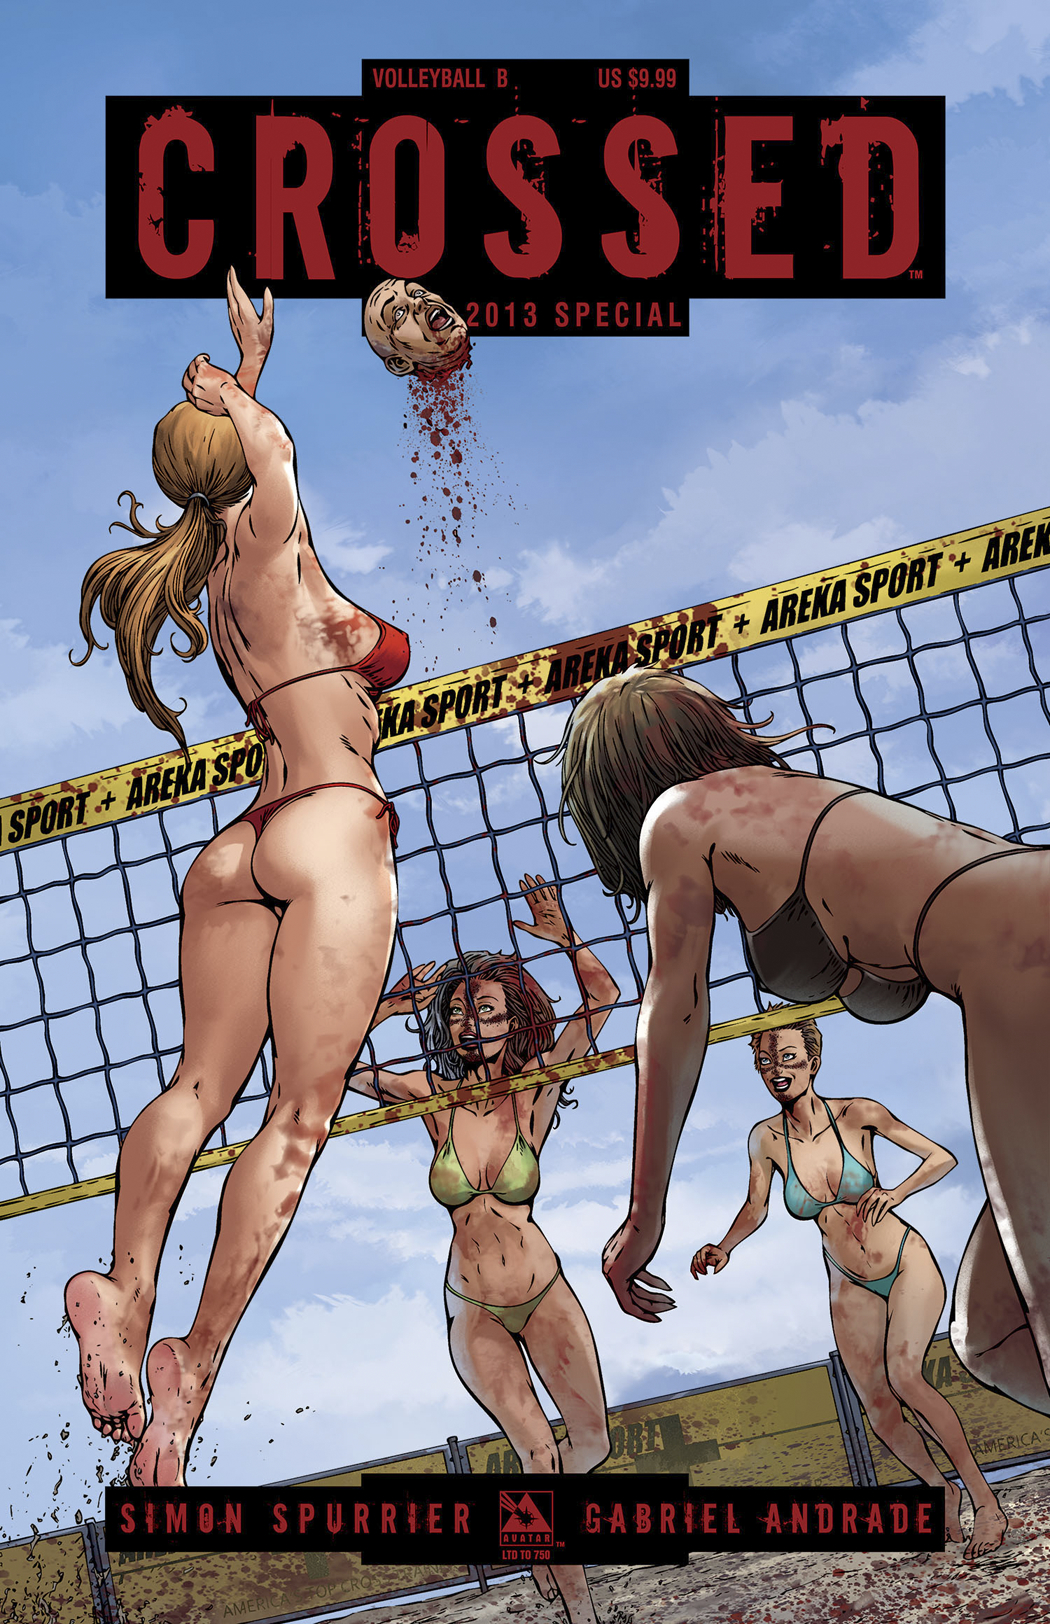 CROSSED SPECIAL 2013 VOLLEYBALL 2 CVR SET